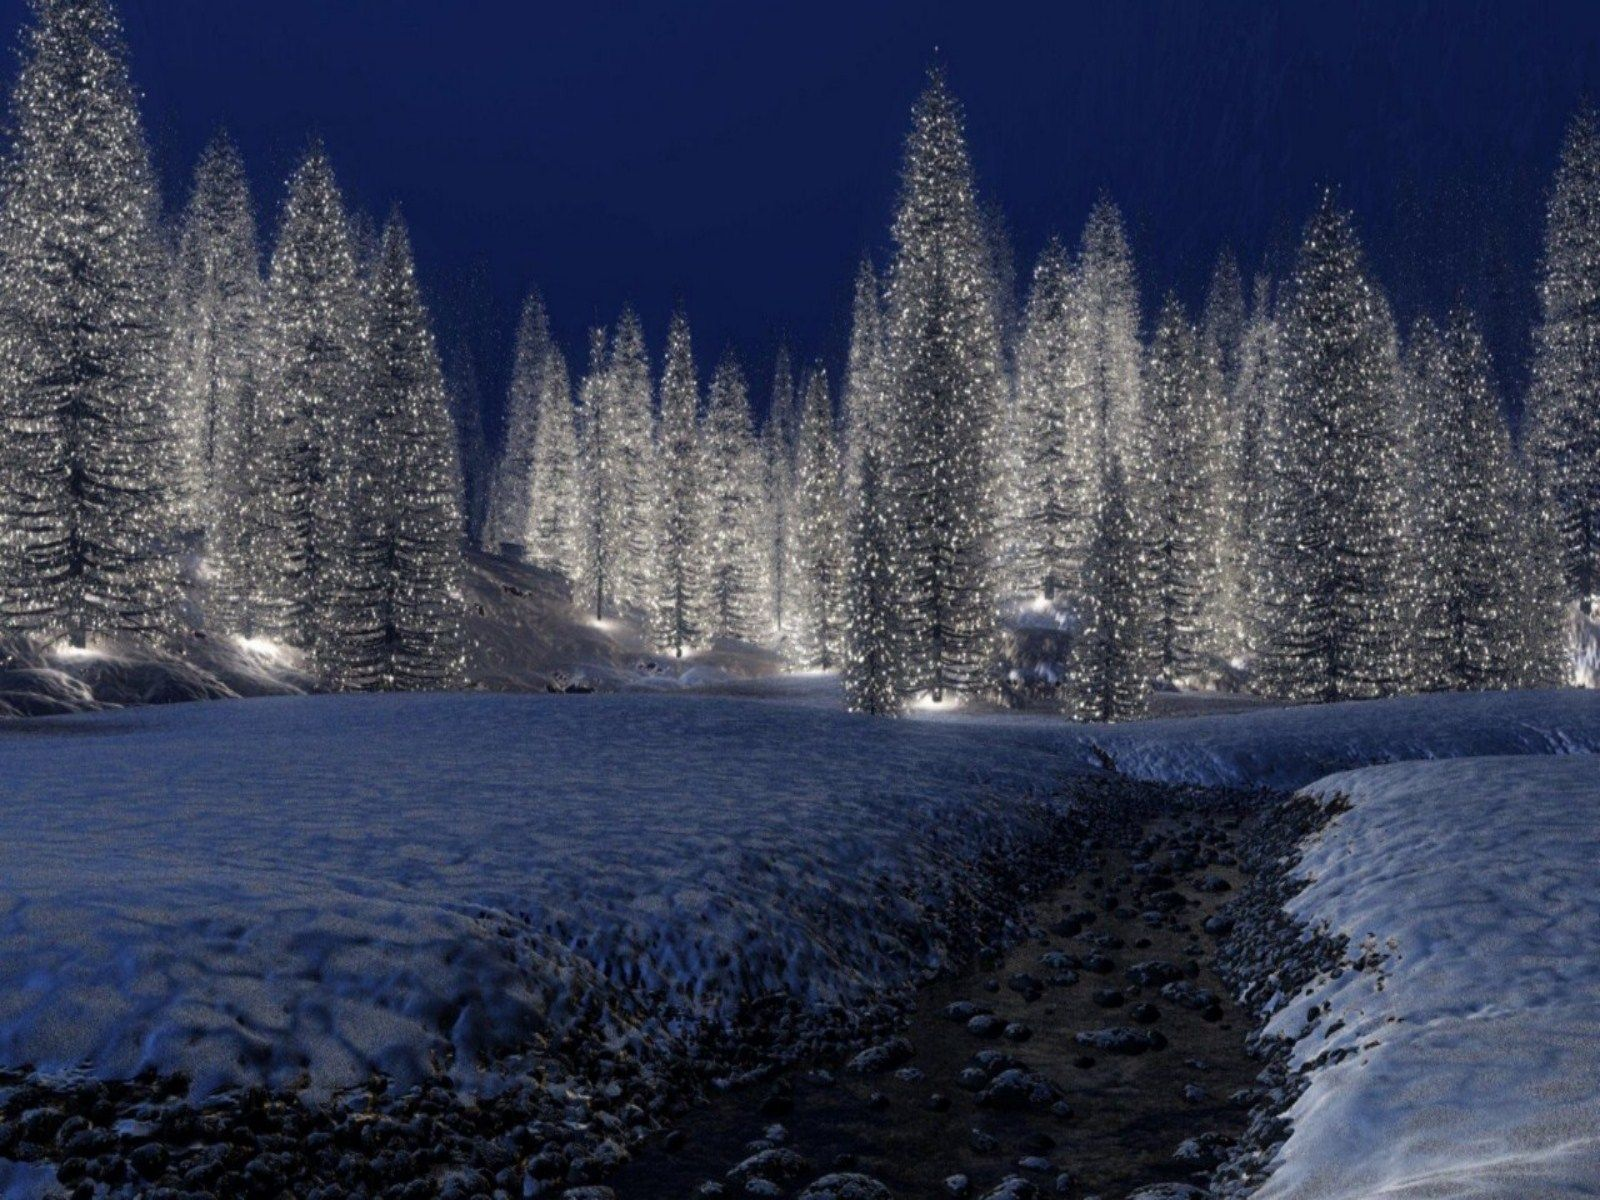 Winter Christmas Backgrounds: Free Download HD Snowy Christmas Scene